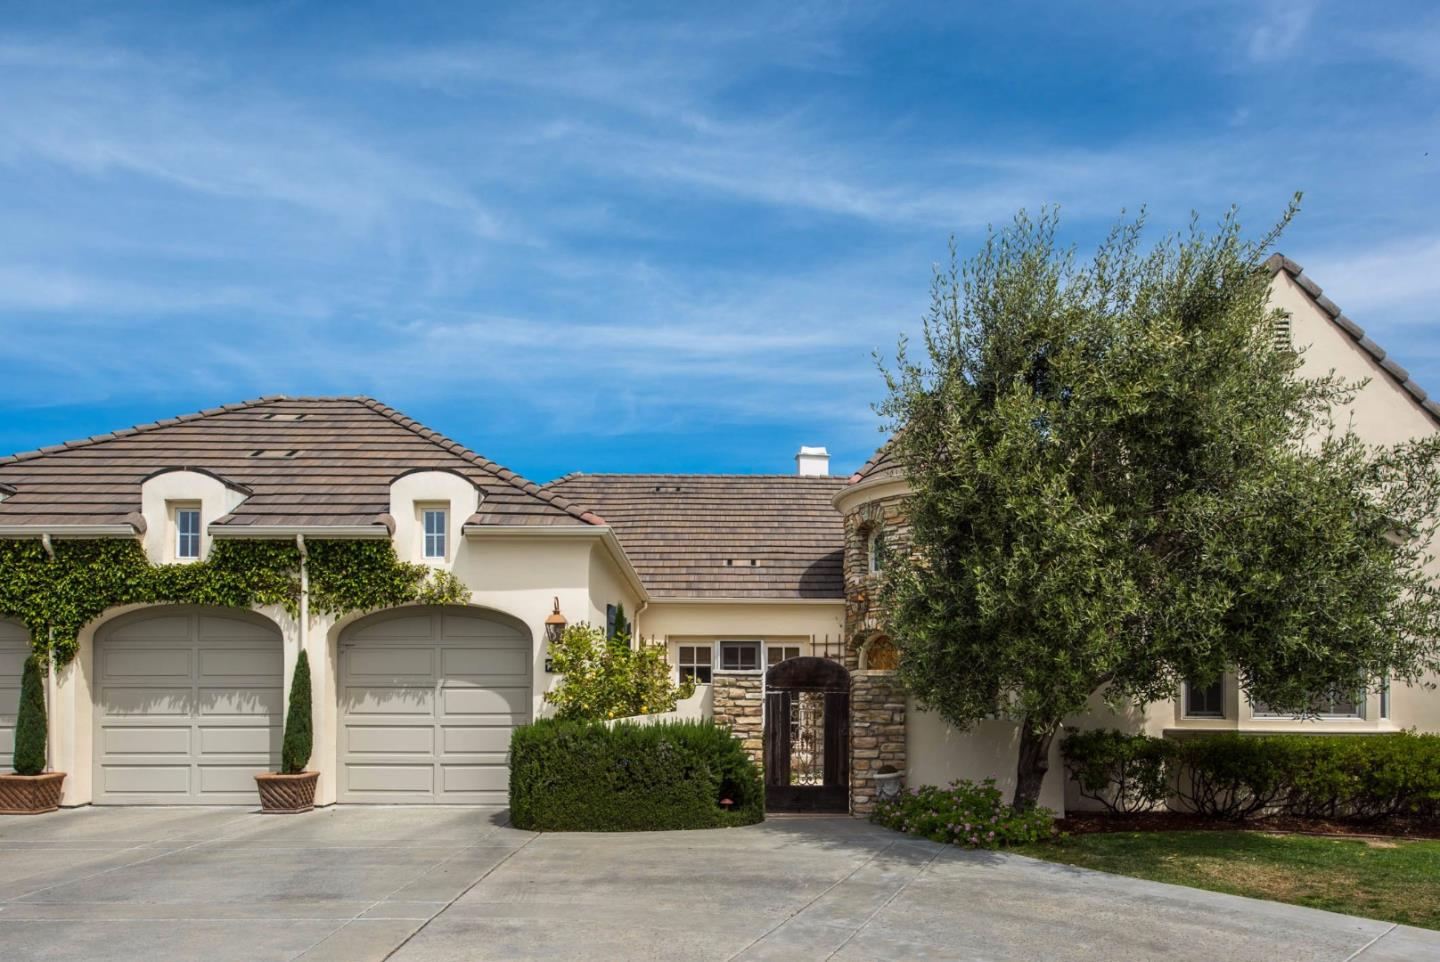 Additional photo for property listing at 224 Madera Court  Monterey, California 93940 Estados Unidos